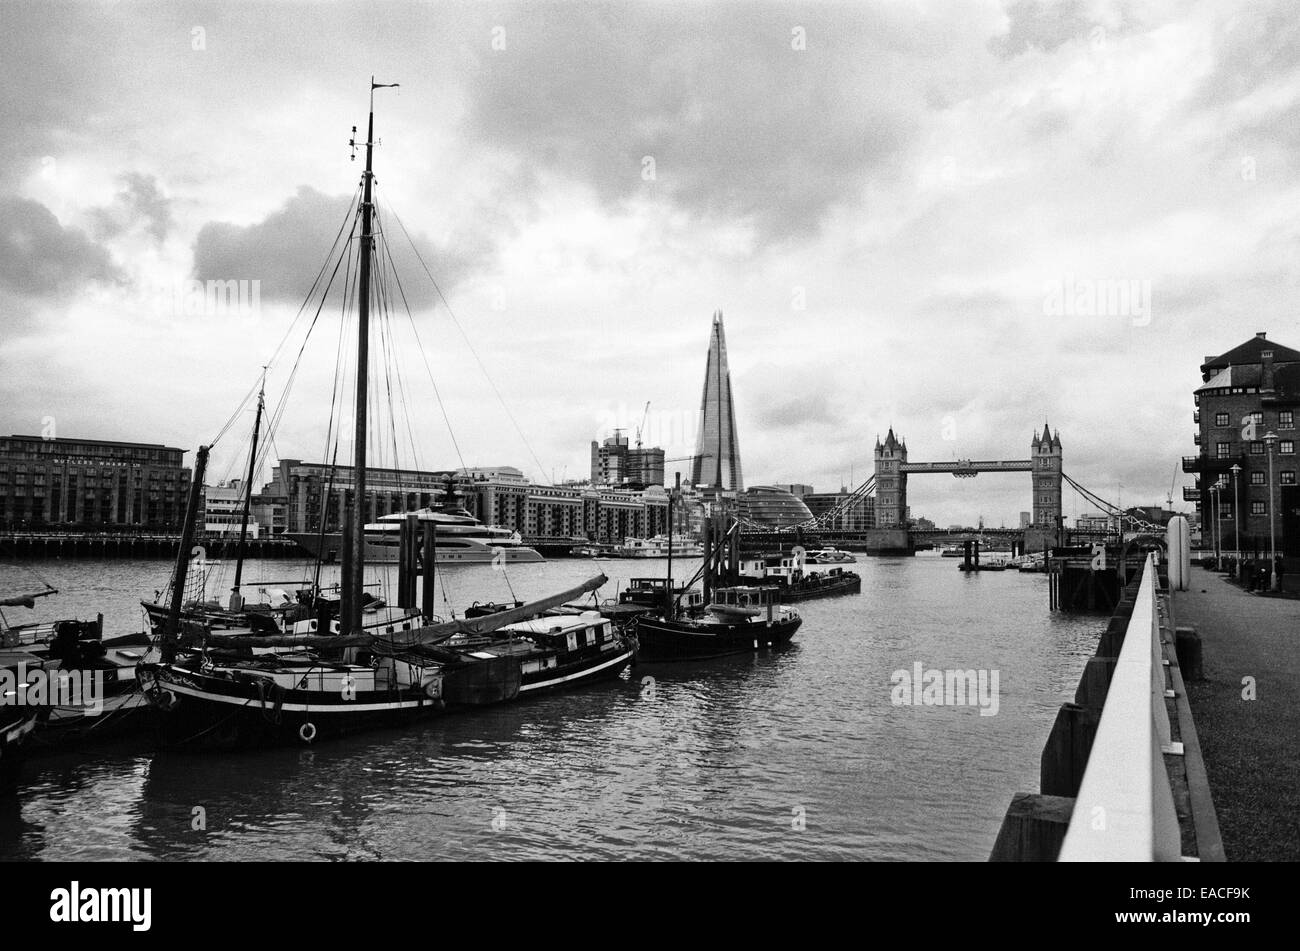 The River Thames London UK at Wapping, looking towards Tower Bridge - Stock Image